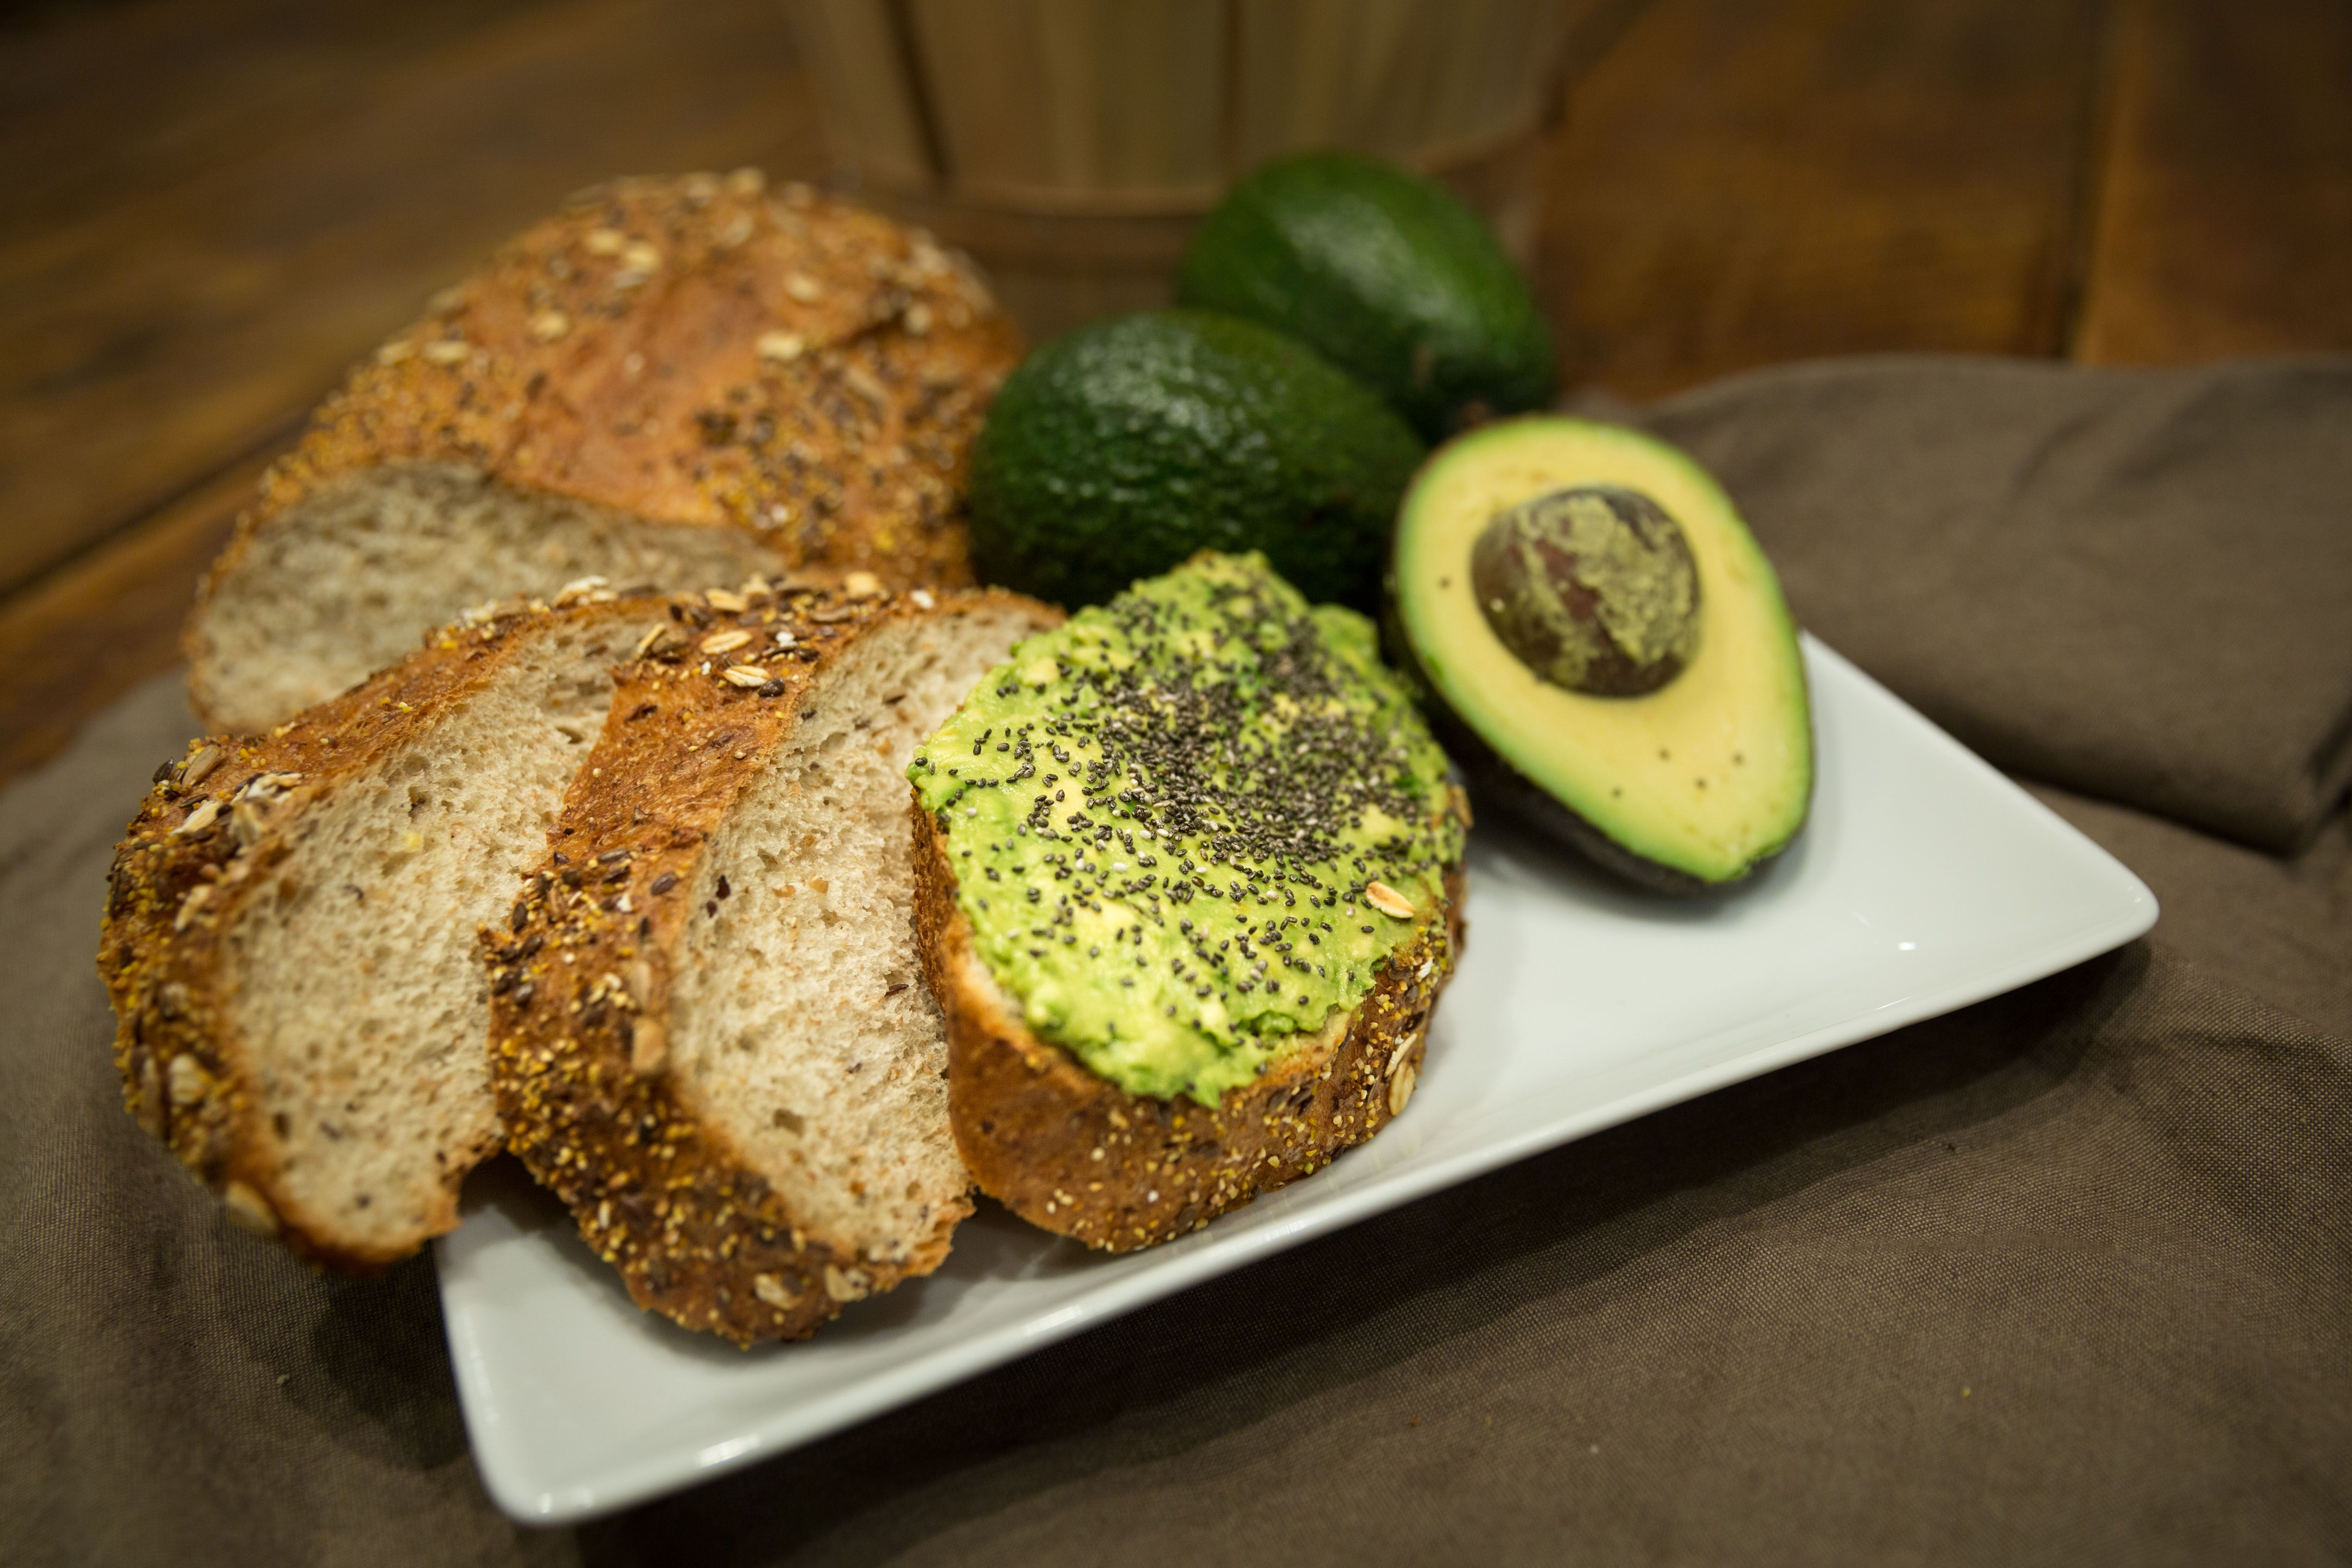 Fresh avocado and chia seeds on our Bakery's 5grain